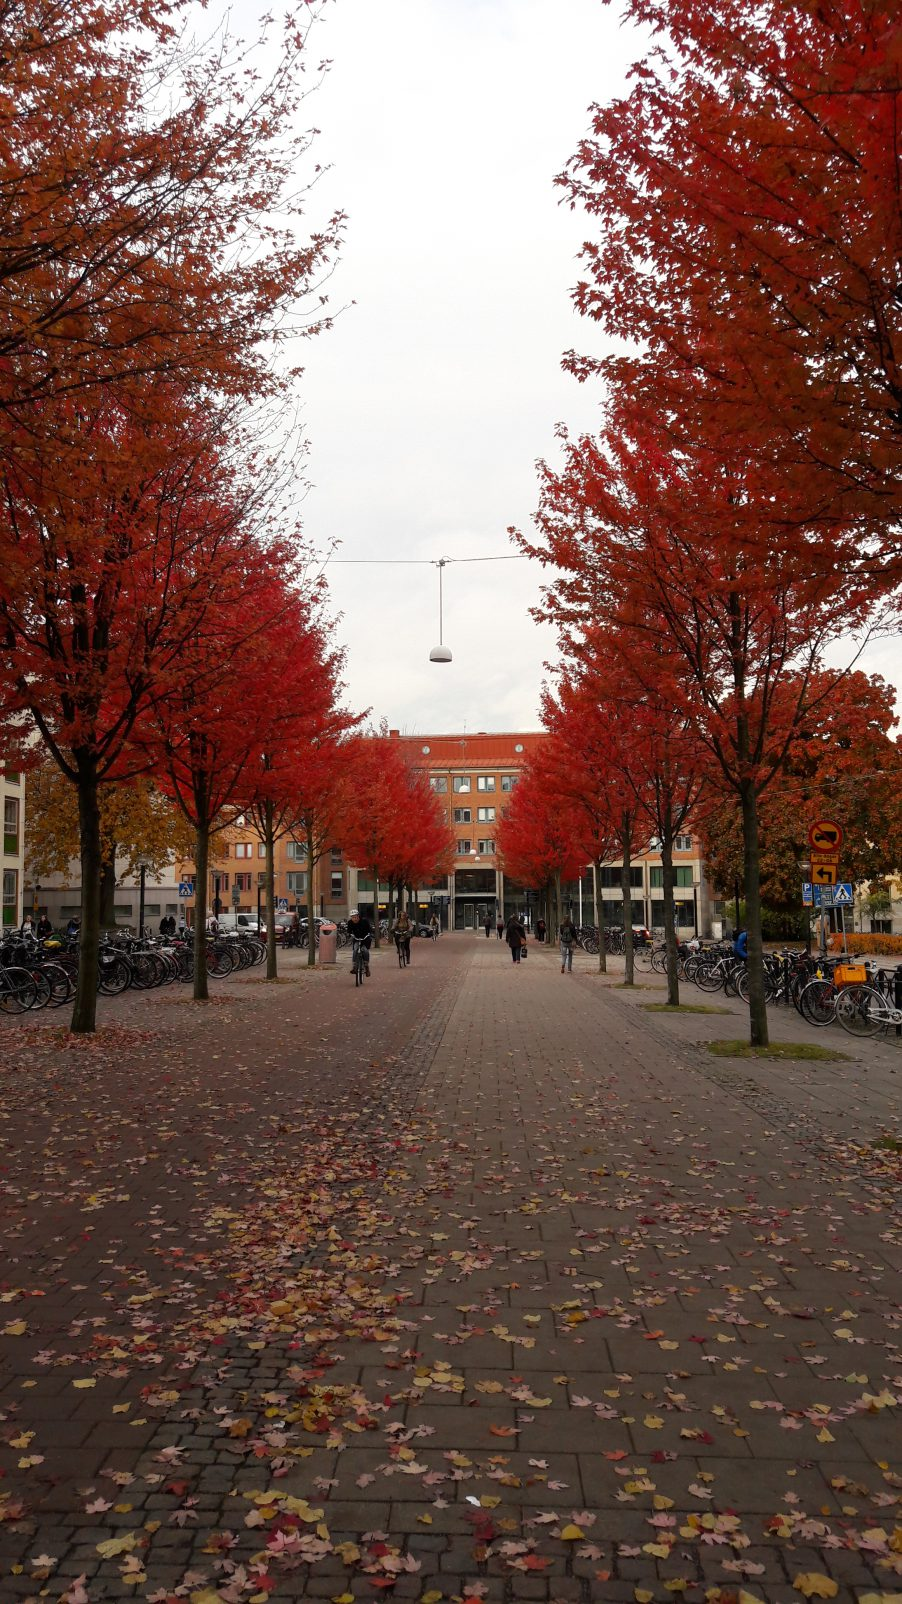 Autumn in Gothenburg